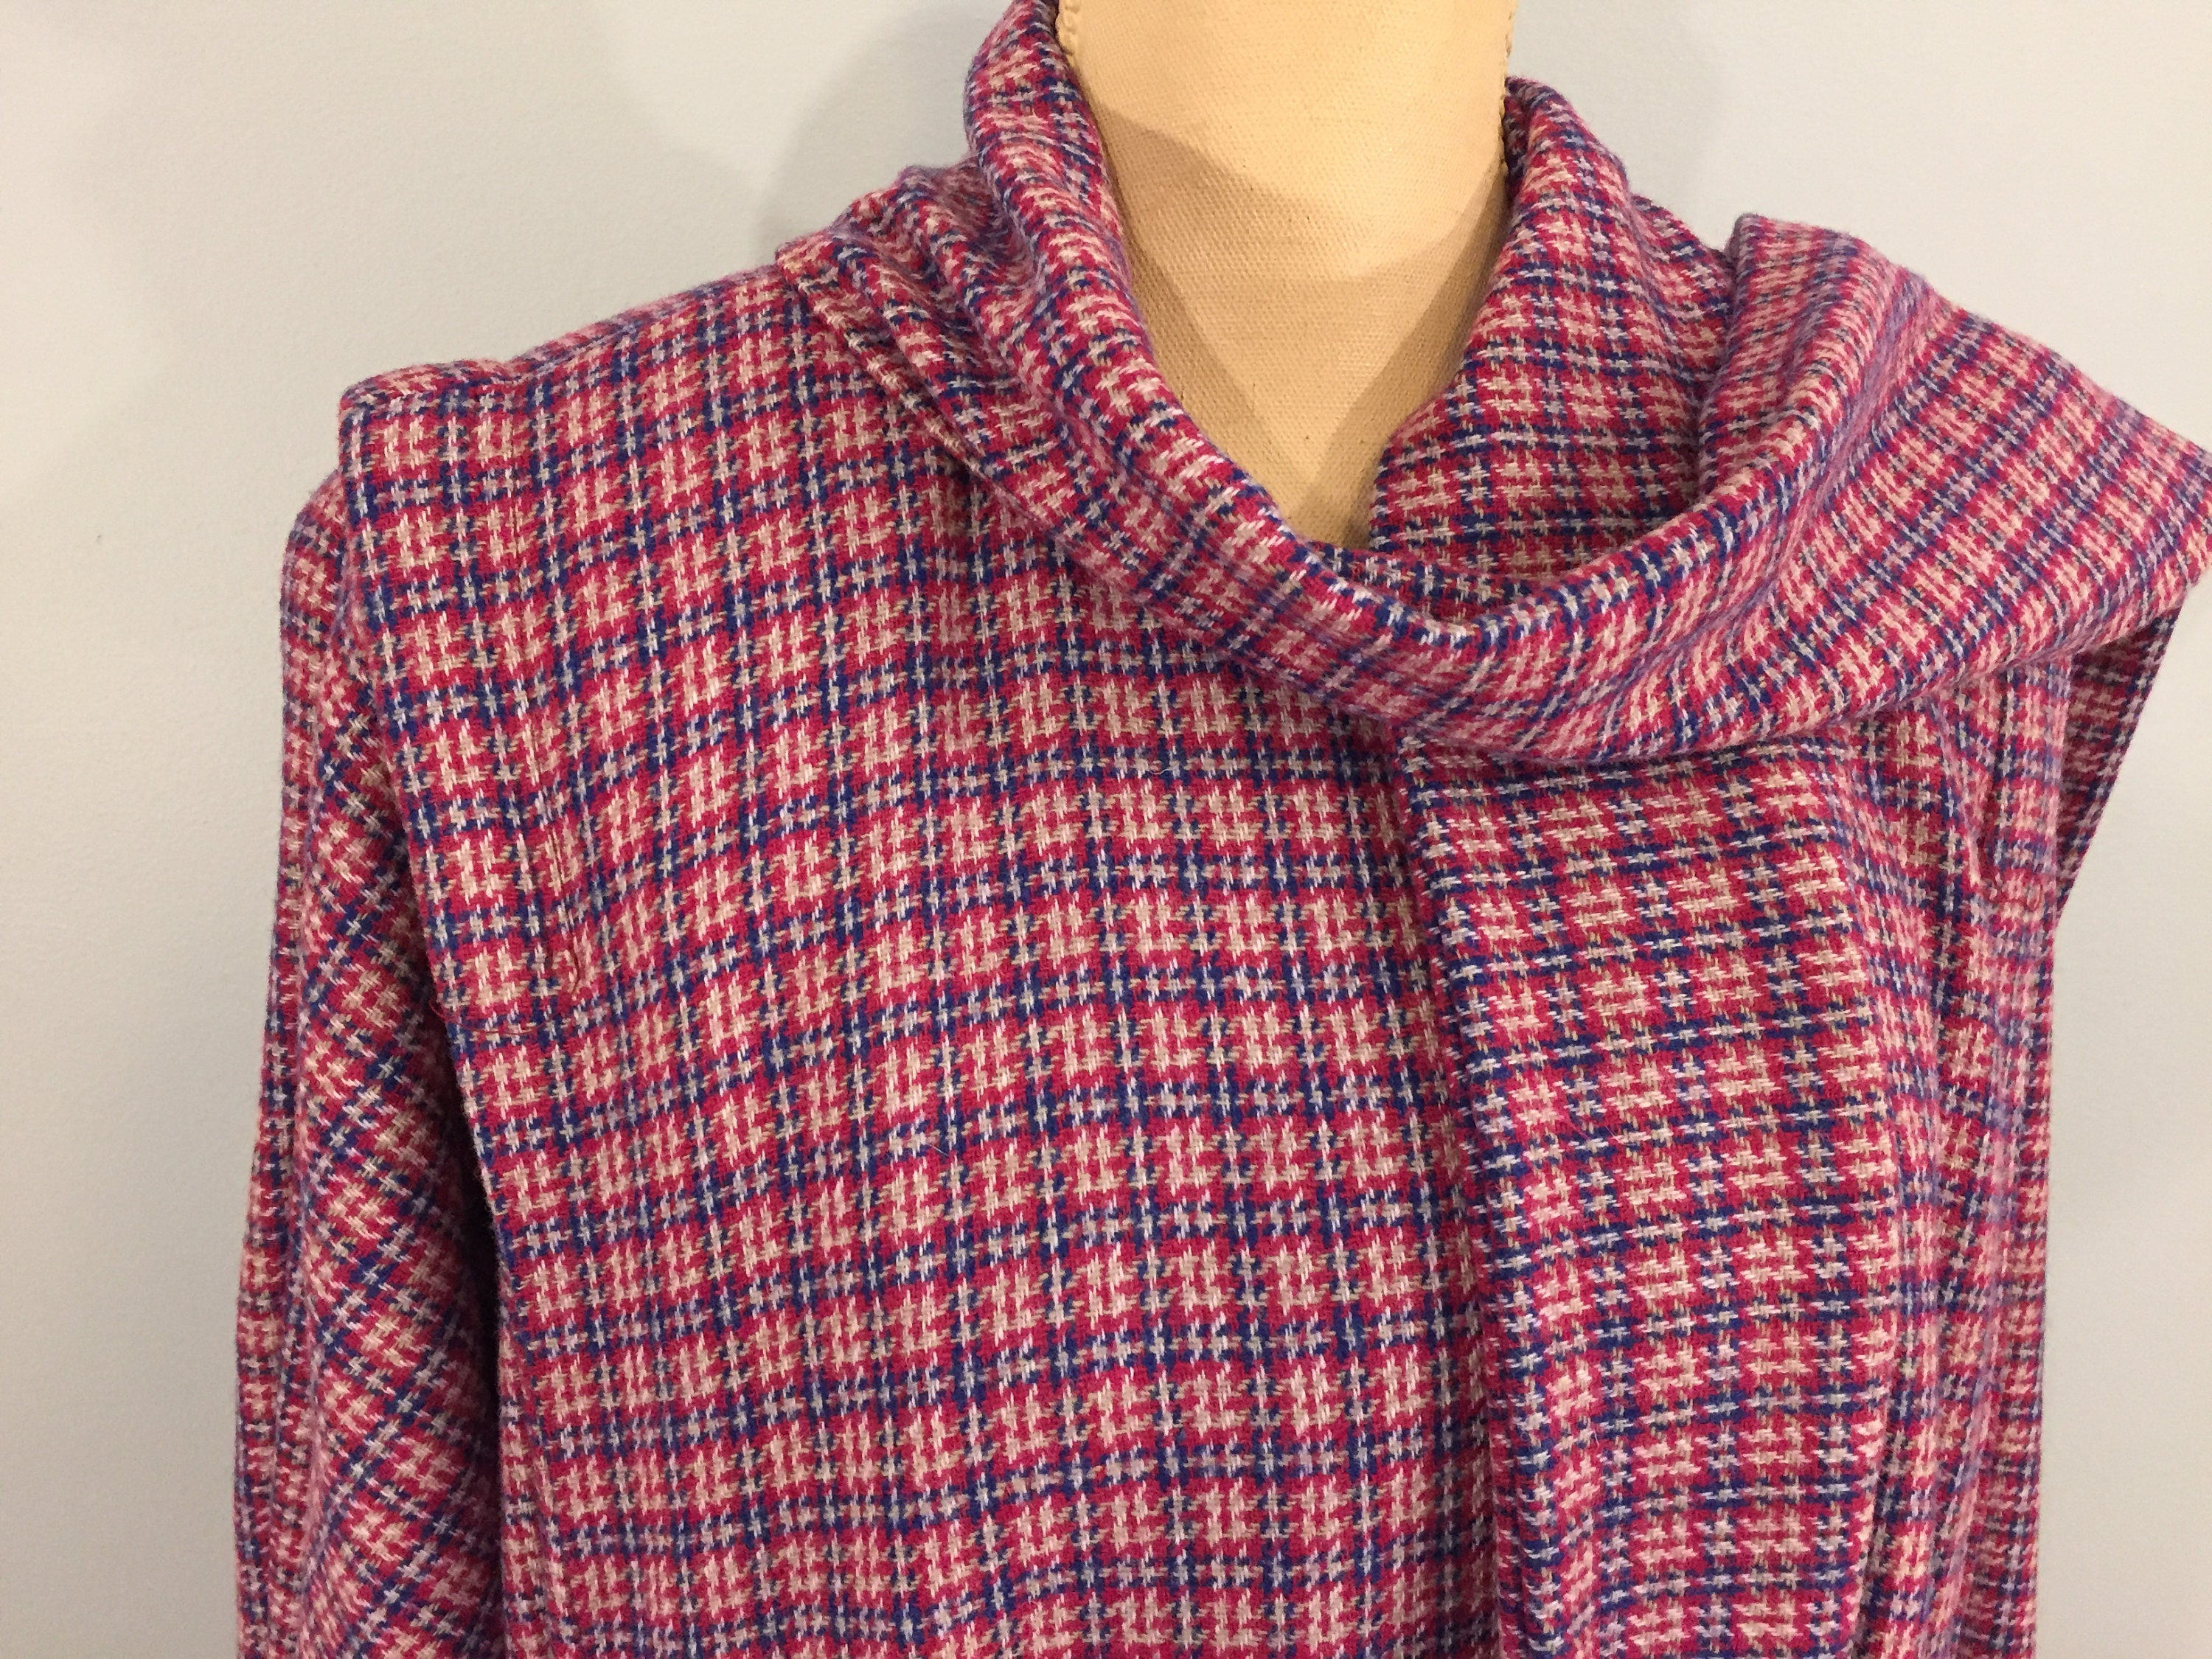 Vintage Scarf Styles -1920s to 1960s 1970S Swing Coat Womens Cape Wool Coats Oversized Winter Pink Blue Plaid Medium Large 70S Vintage Clothing $0.00 AT vintagedancer.com